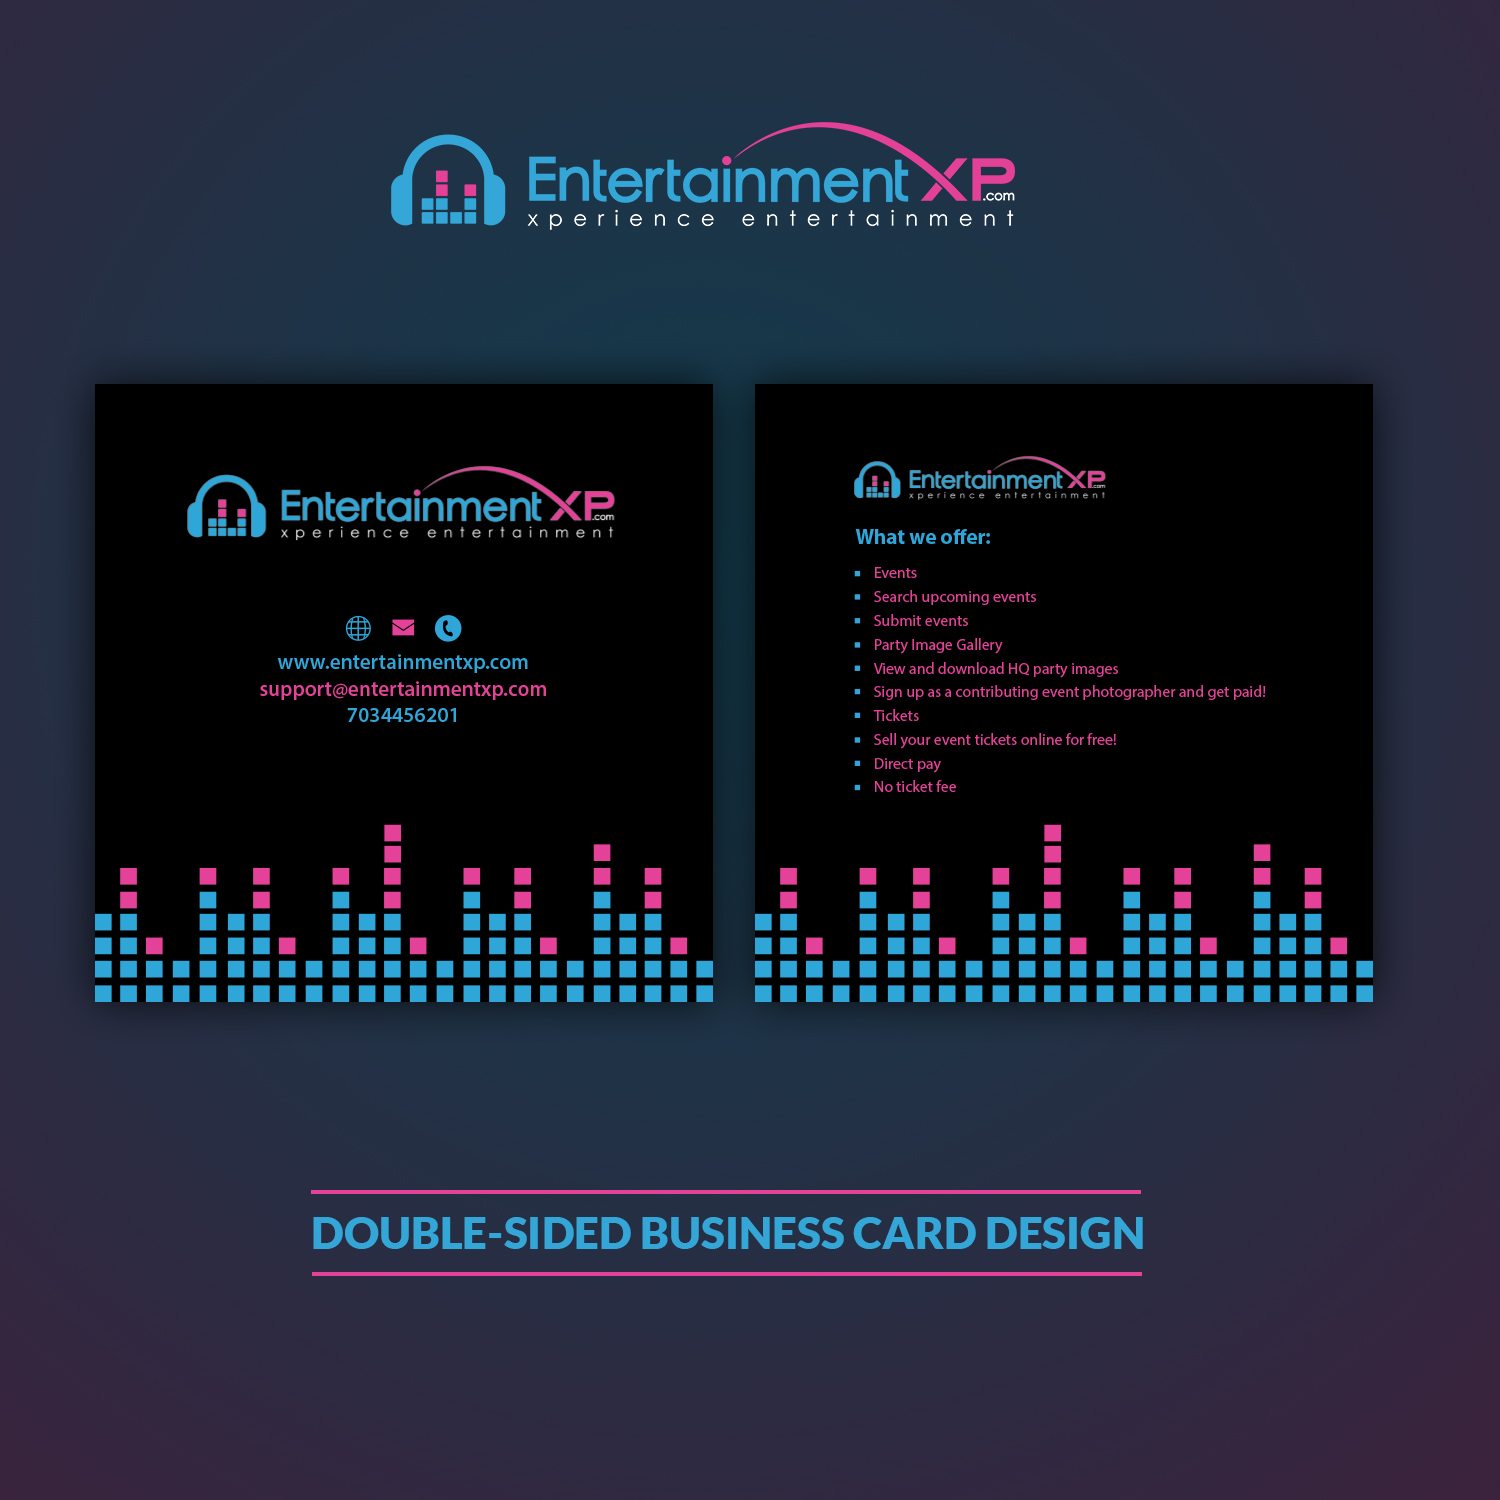 Masculine serious business business card design for business card design by clickdesign for entertainmentxp design 13166394 reheart Choice Image